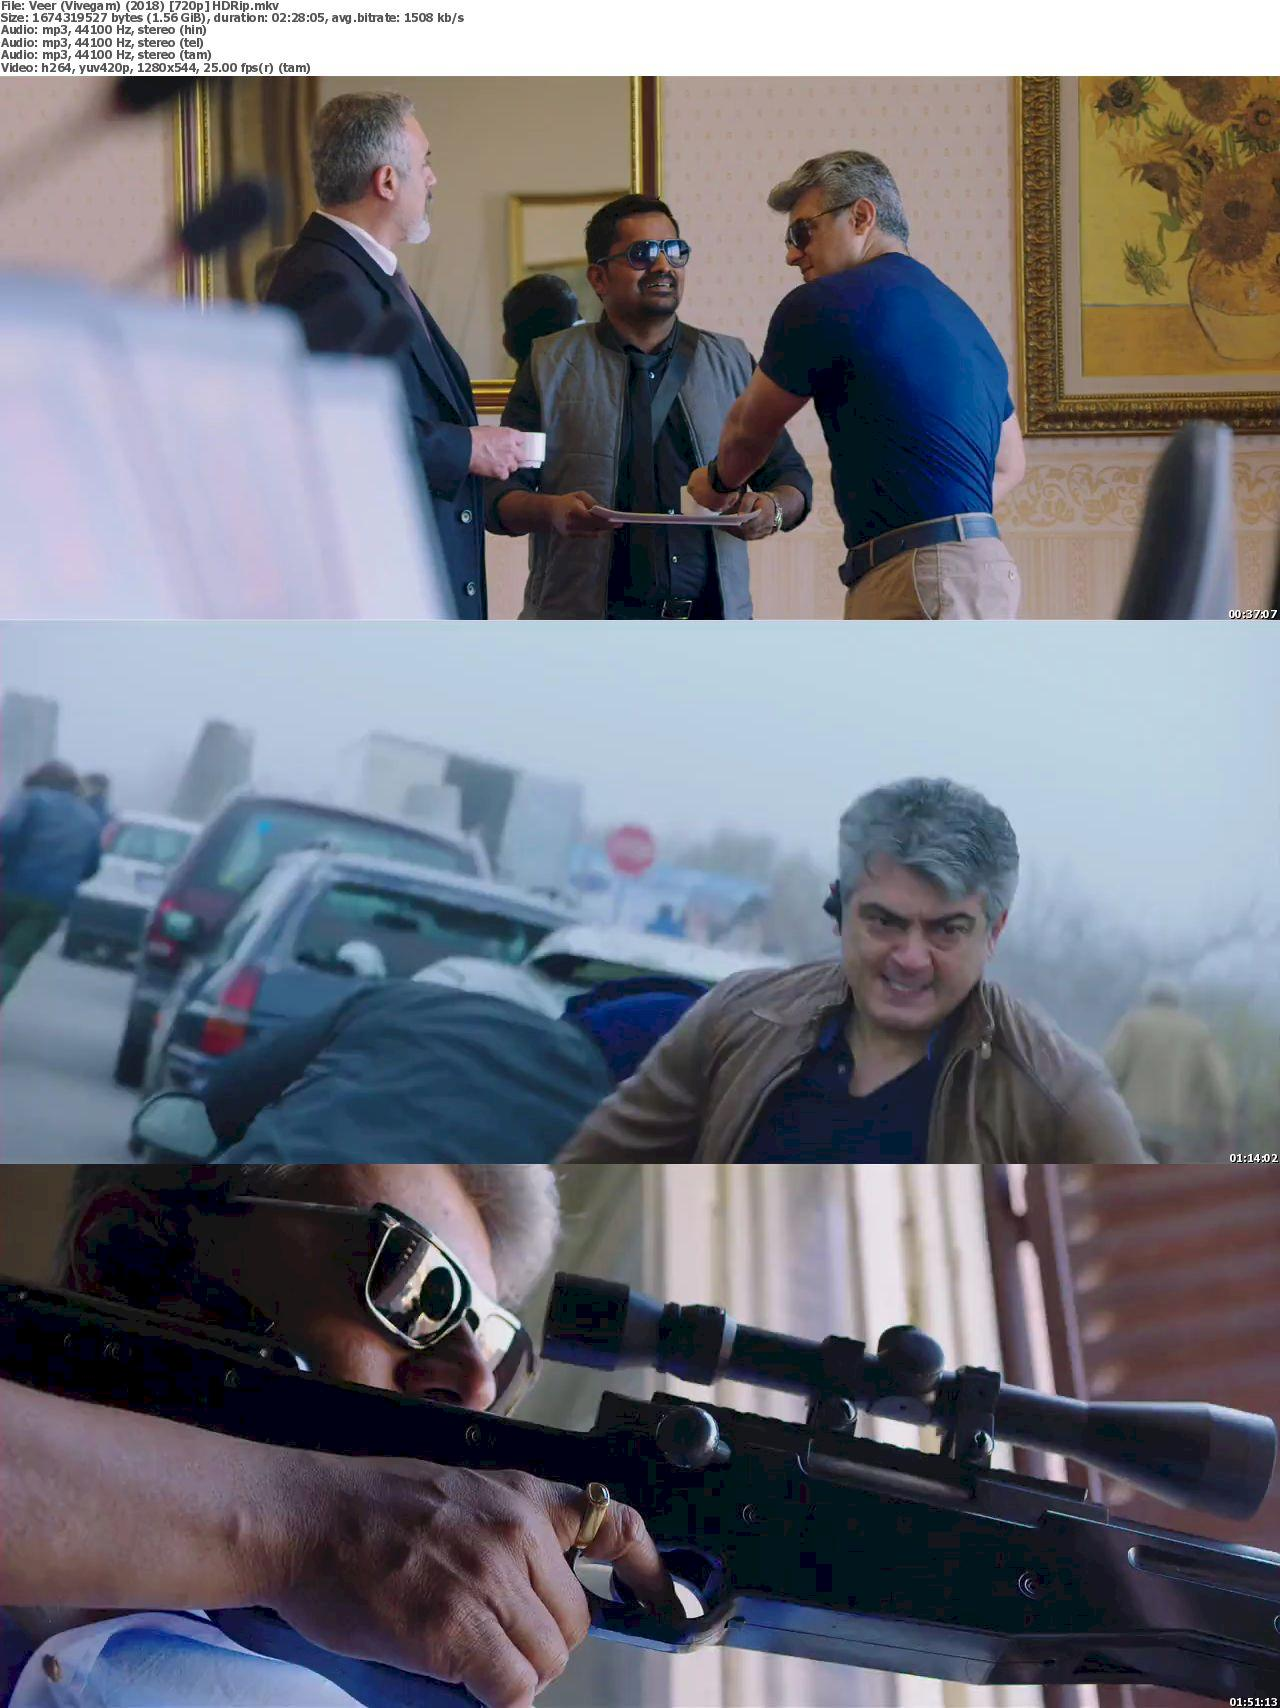 Vivegam (2017) [720p] HD Full Movie Watch Online & Download 720p Screenshot